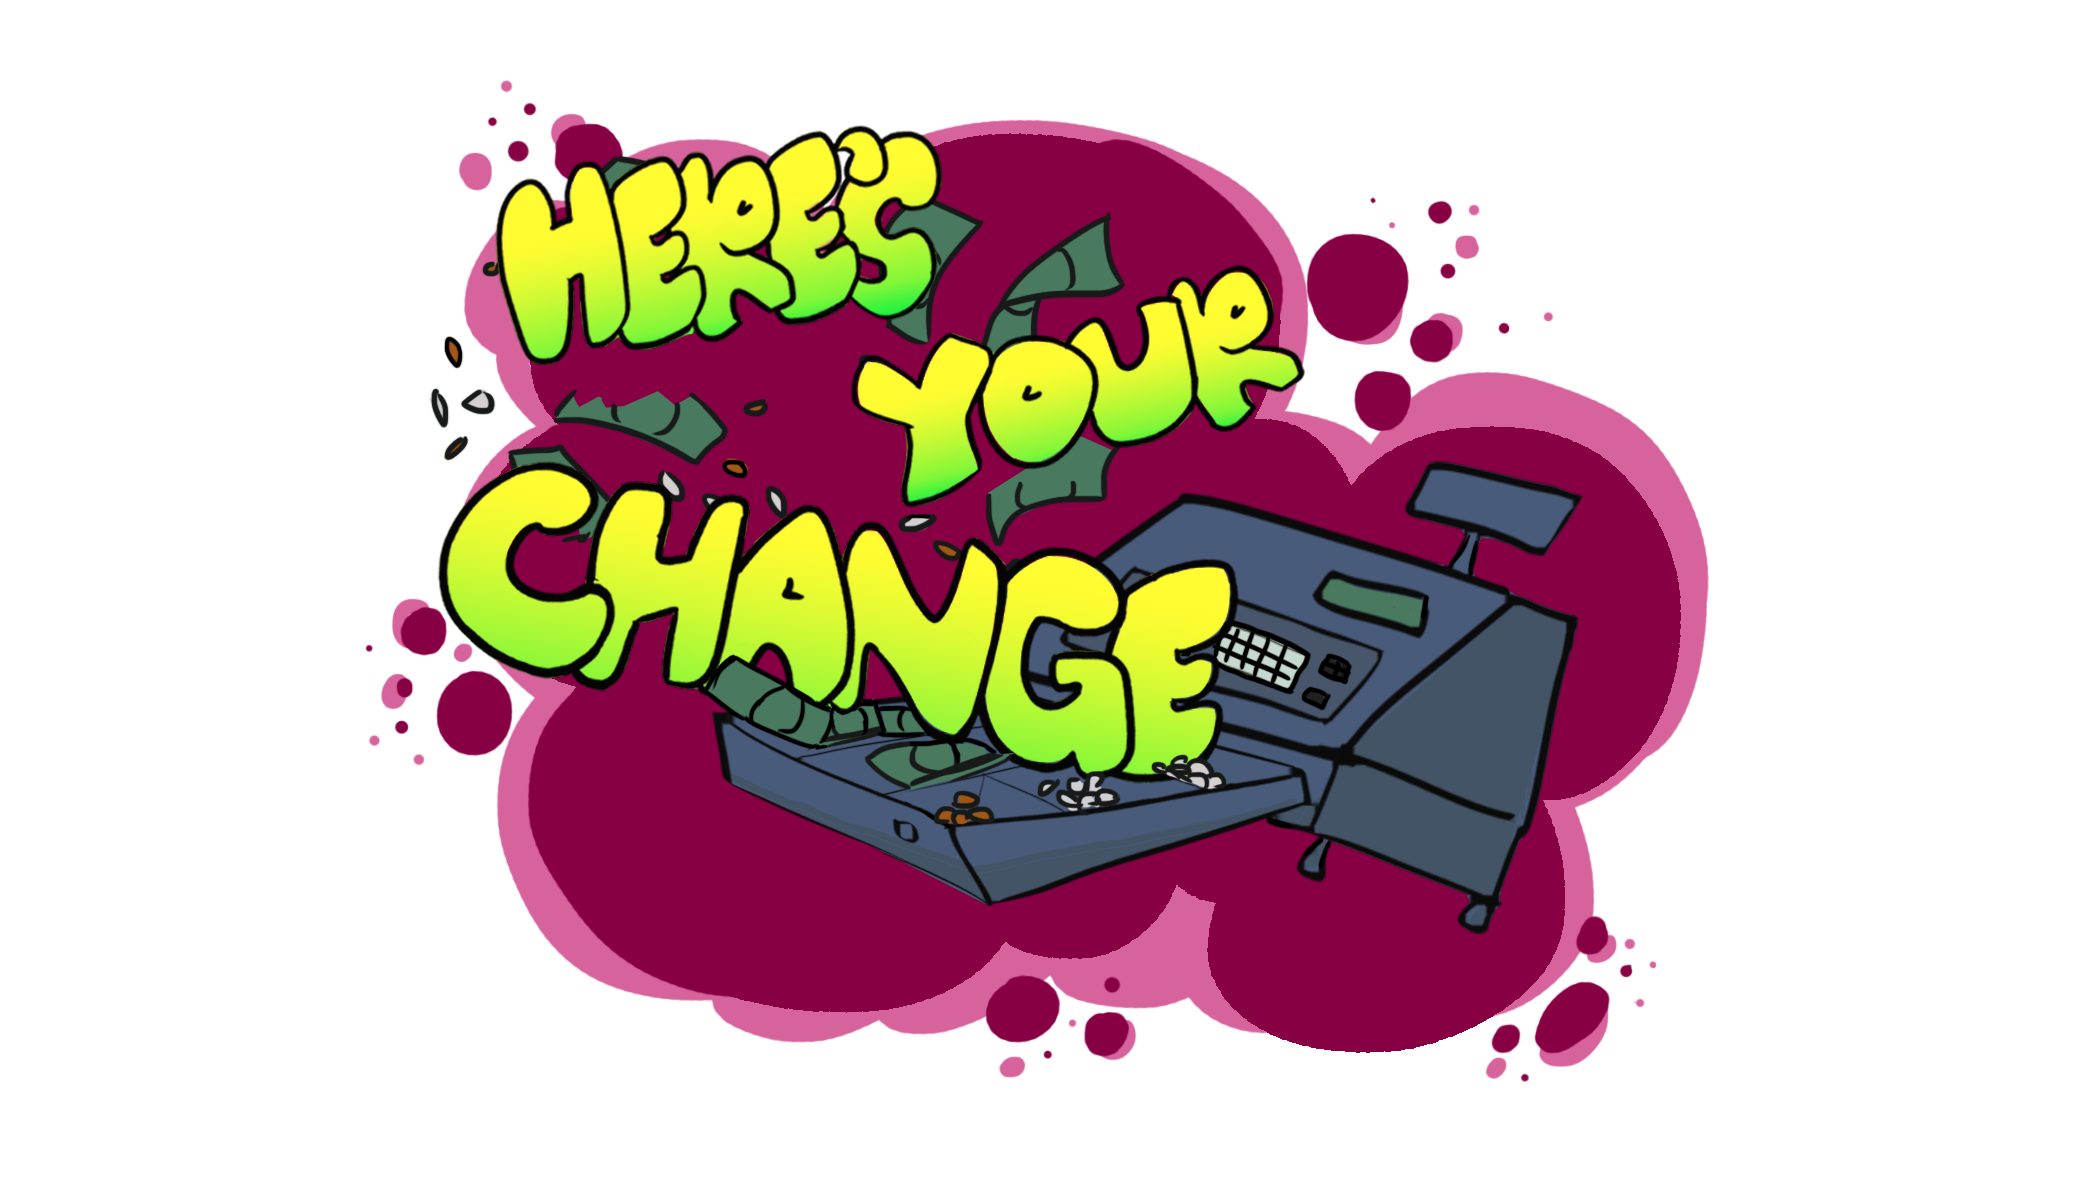 Here's Your Change!